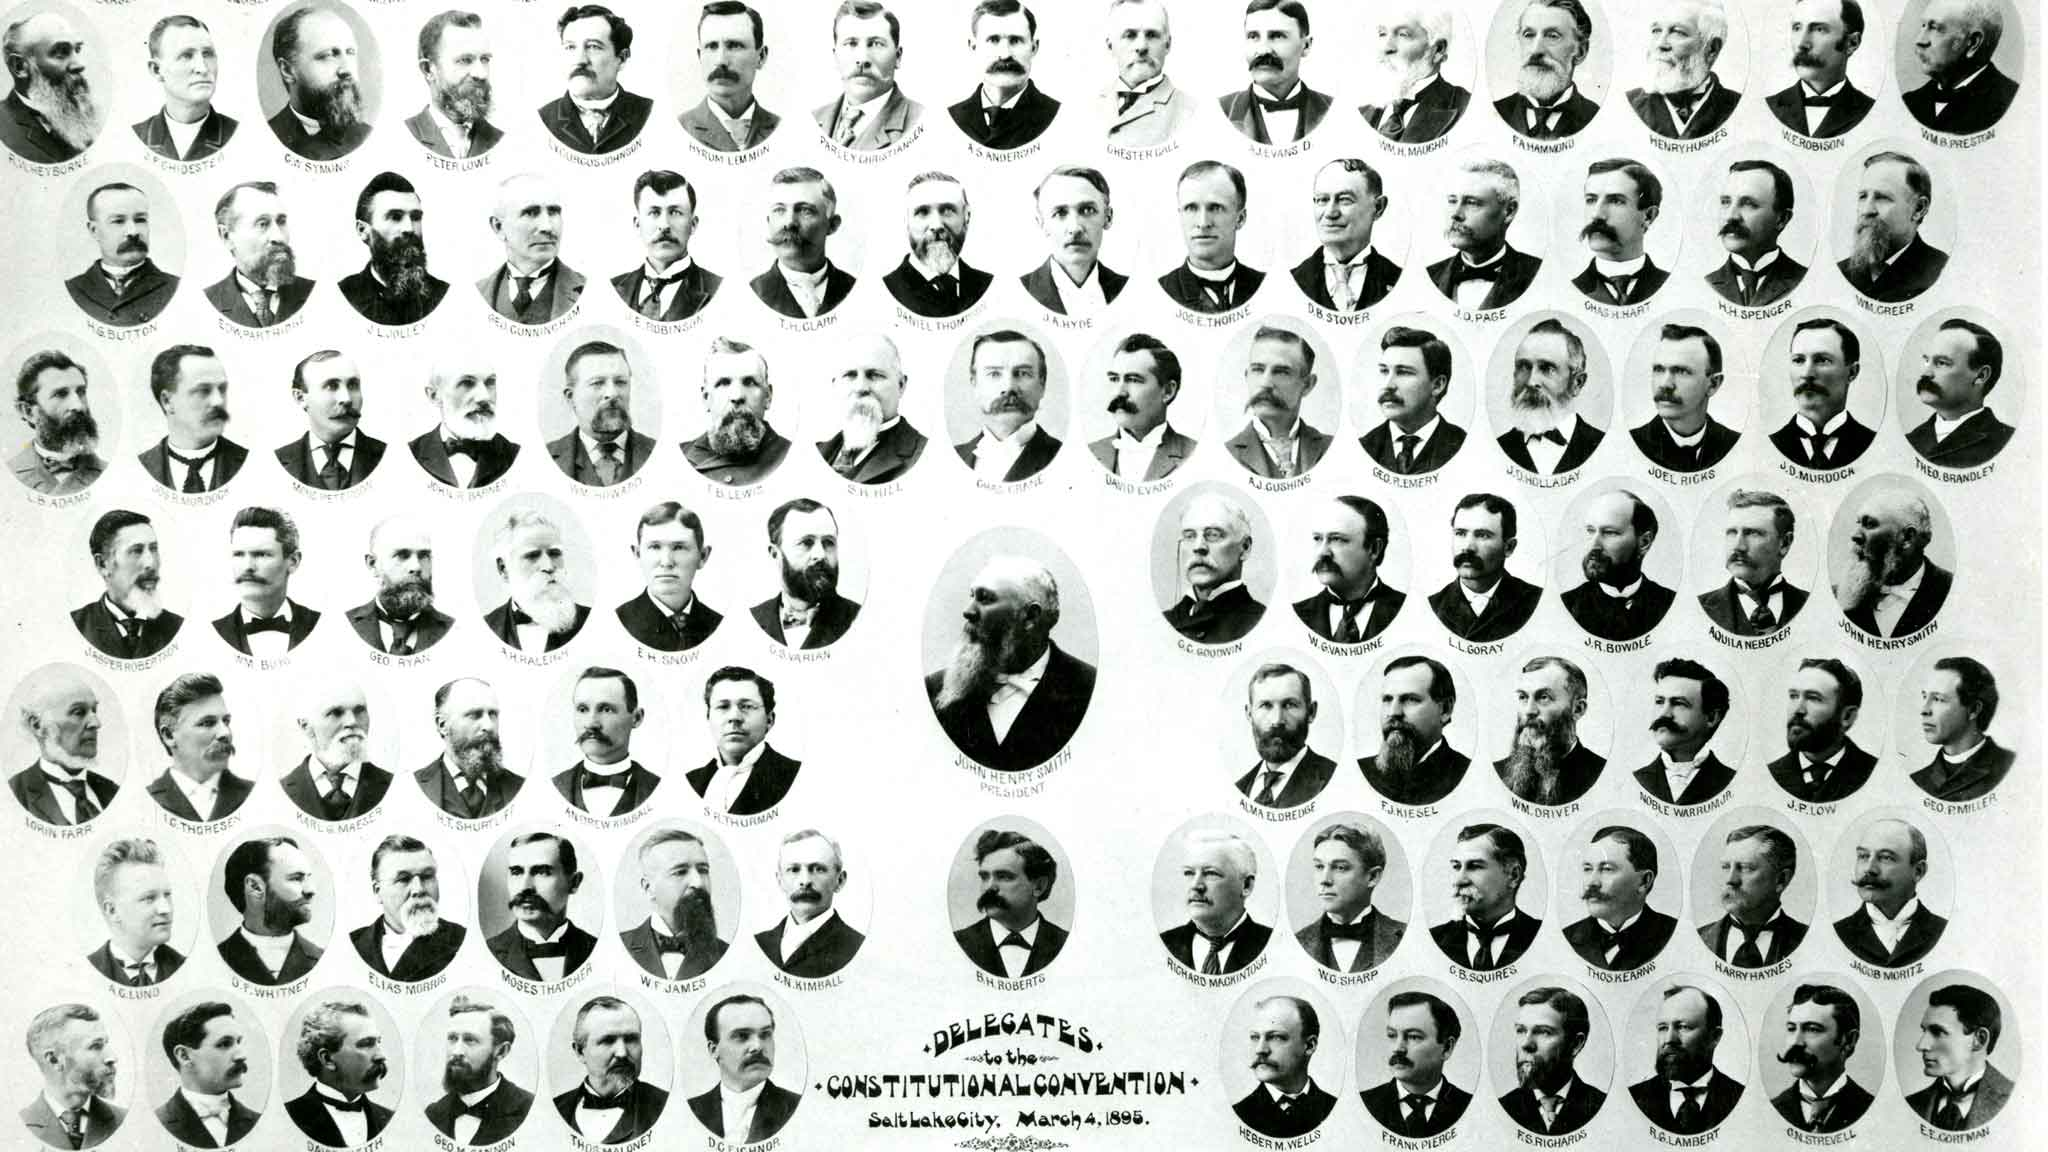 Convention image